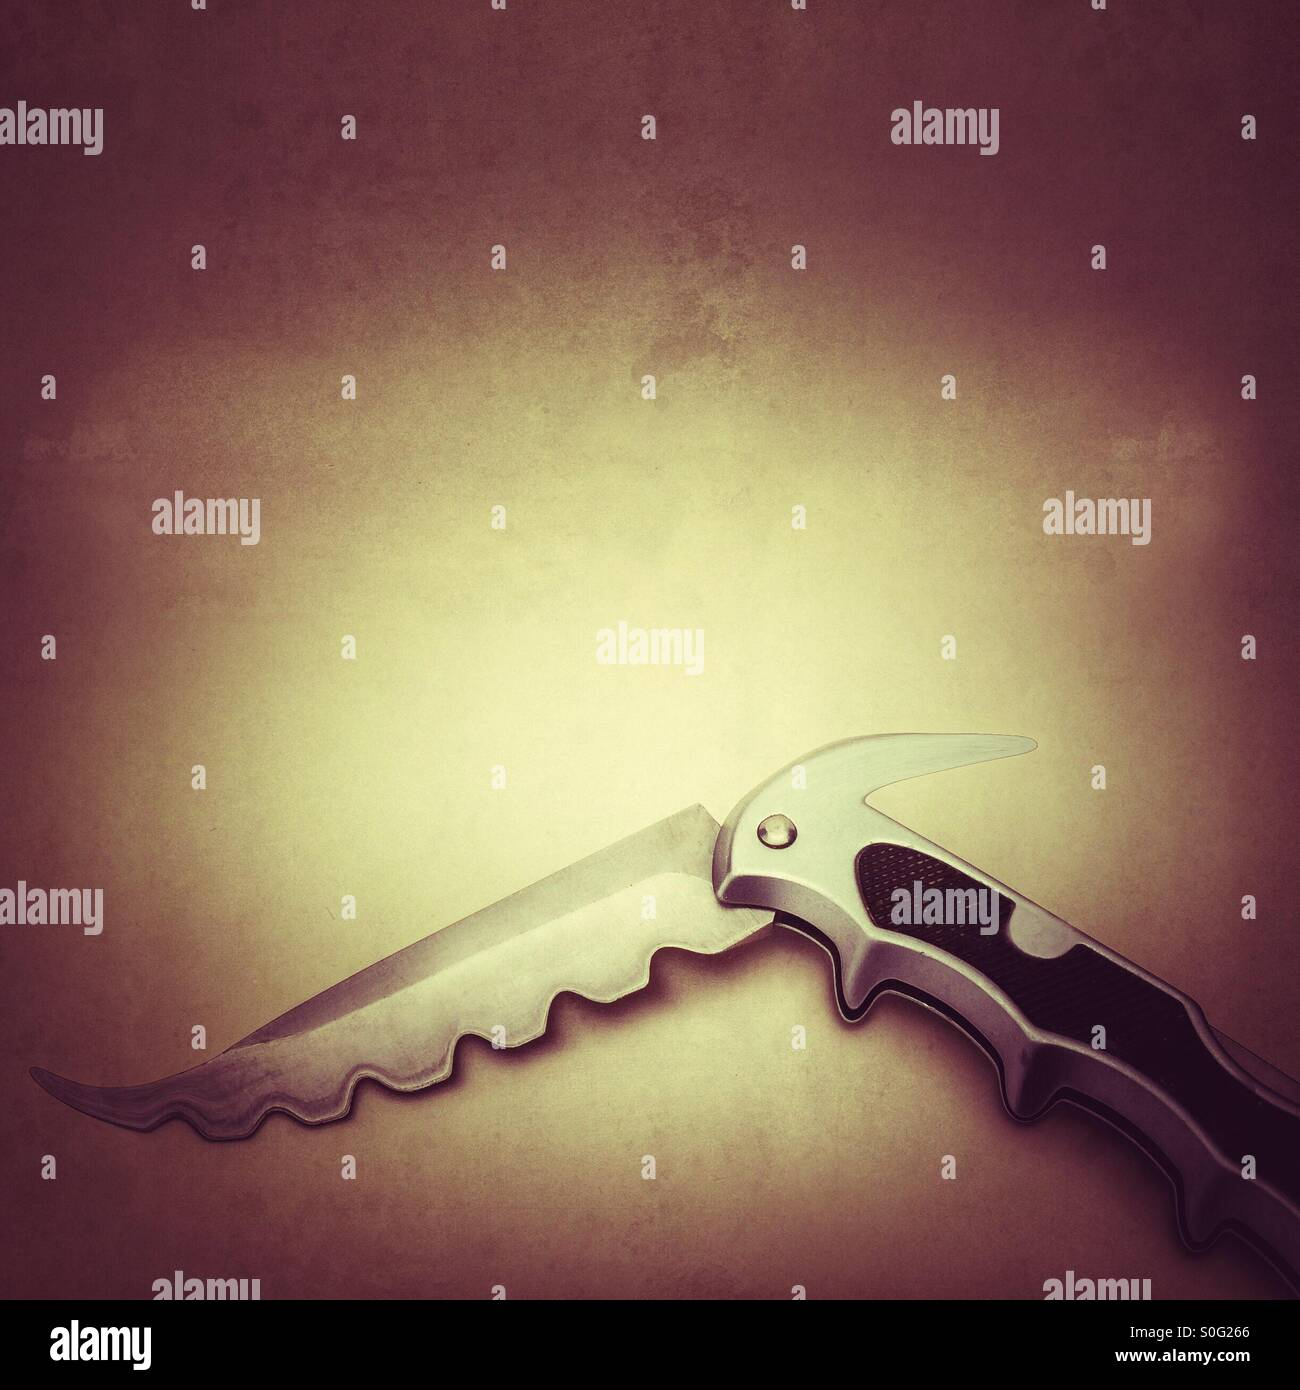 Nasty dangerous looking pocket knife manipulated to give swatted looking blade - Stock Image